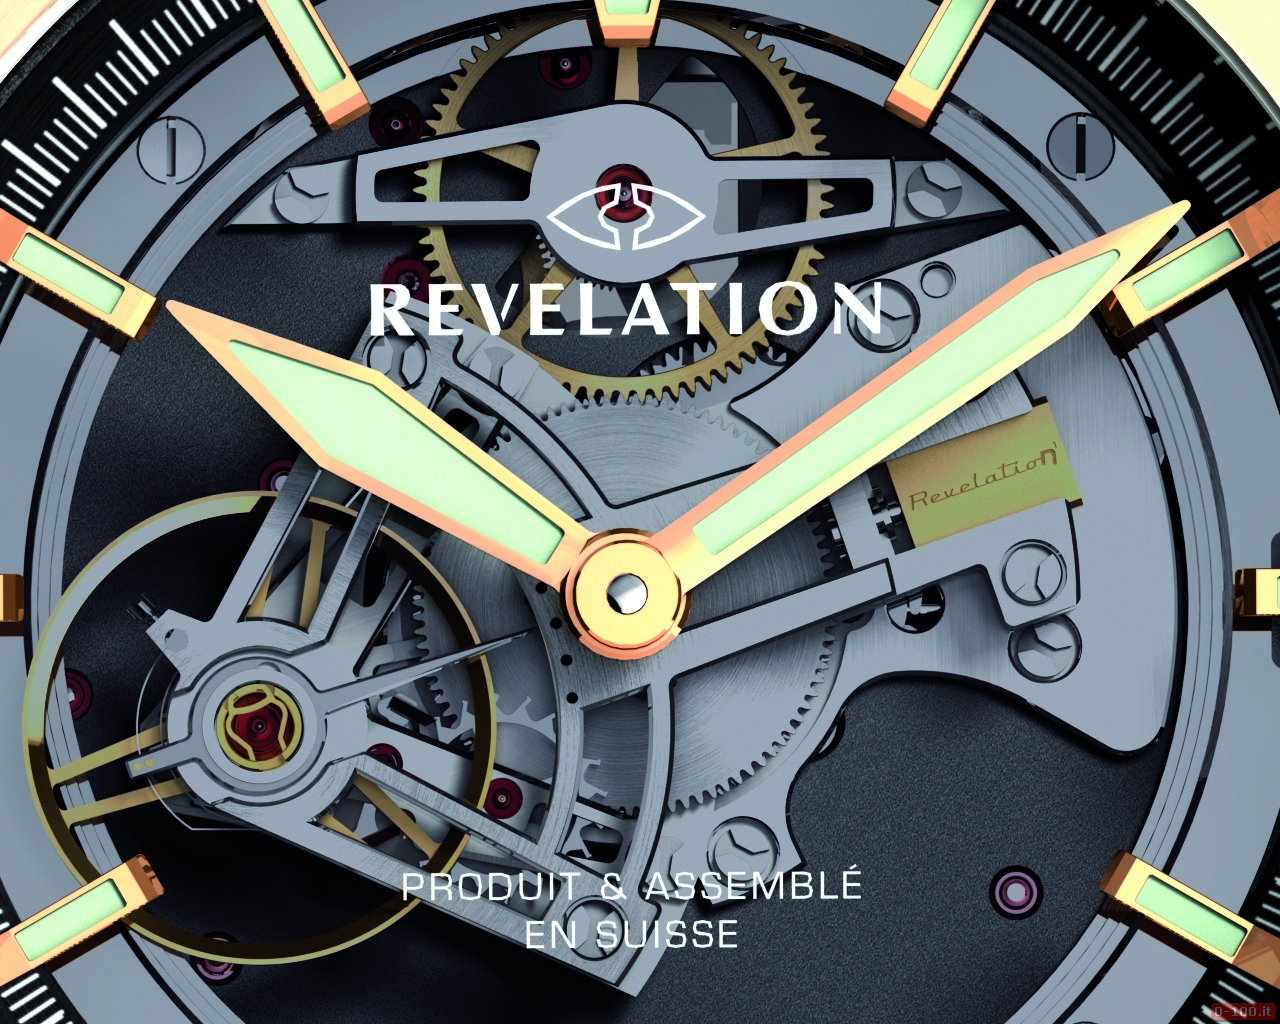 anteprima-baselword-2013-revelation-r04-tourbillon-magical-watch-dial_0-100_4